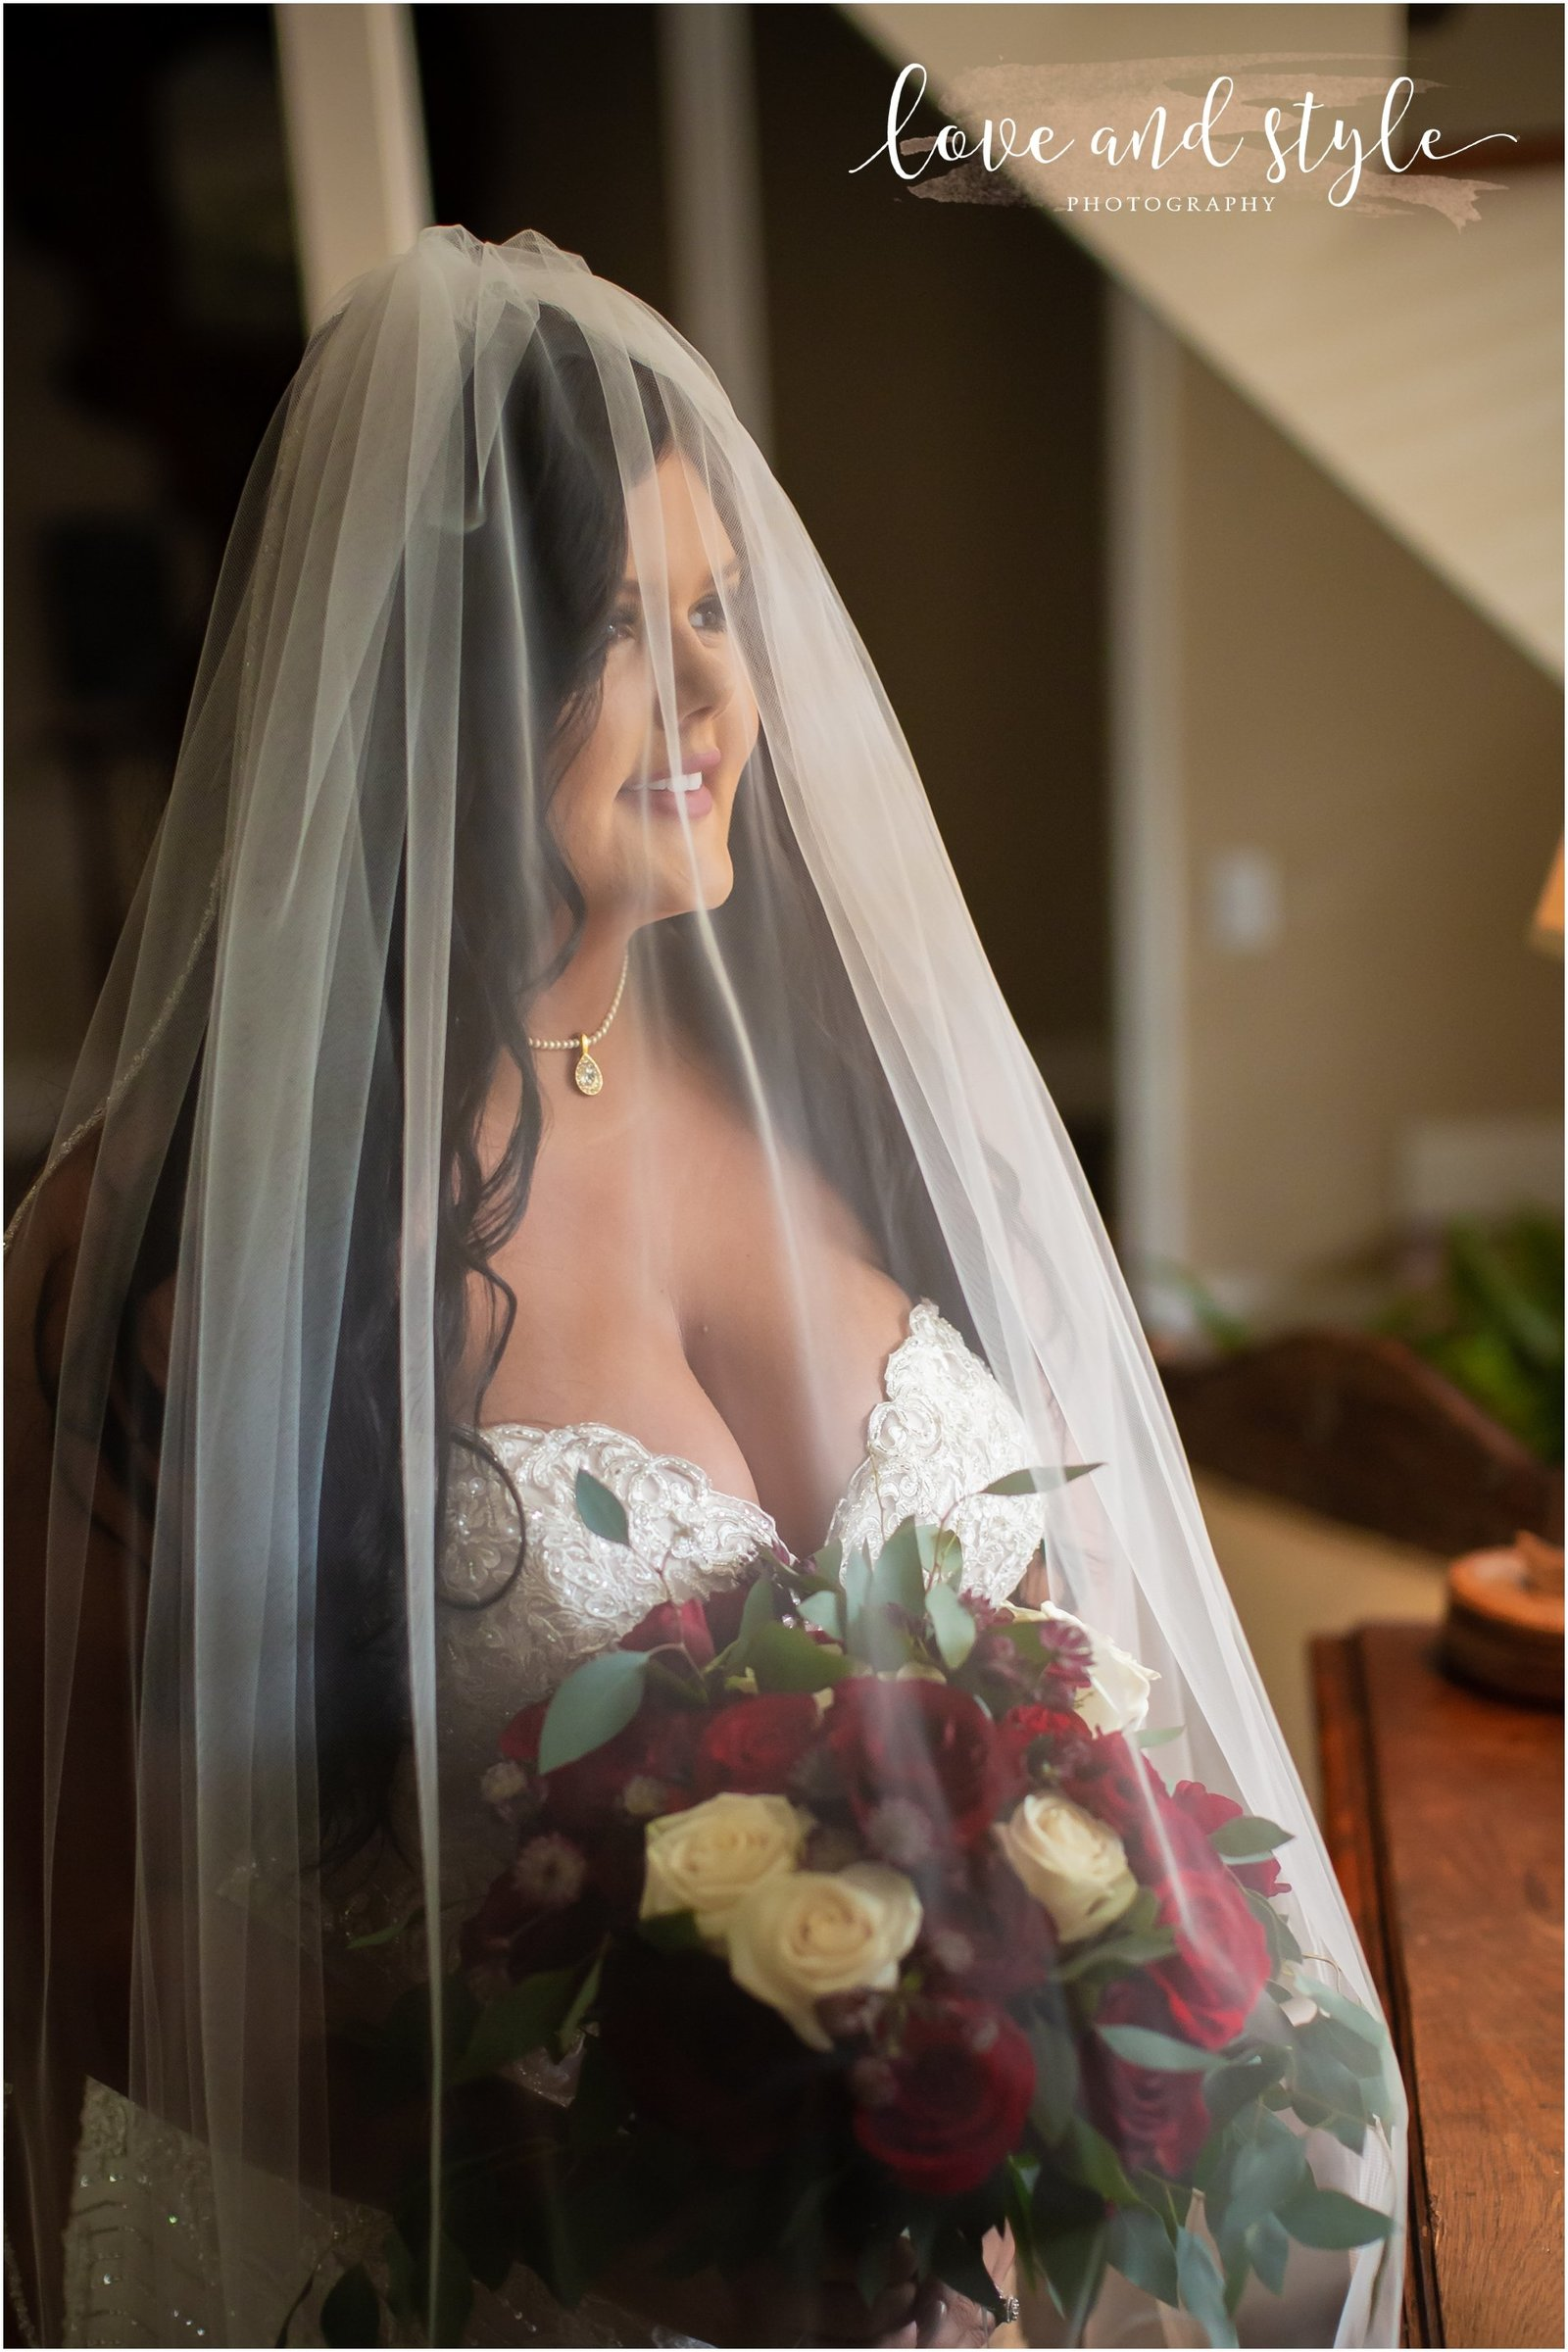 Bride getting ready at The Barn at Chapel Creek, Sarasota Florida